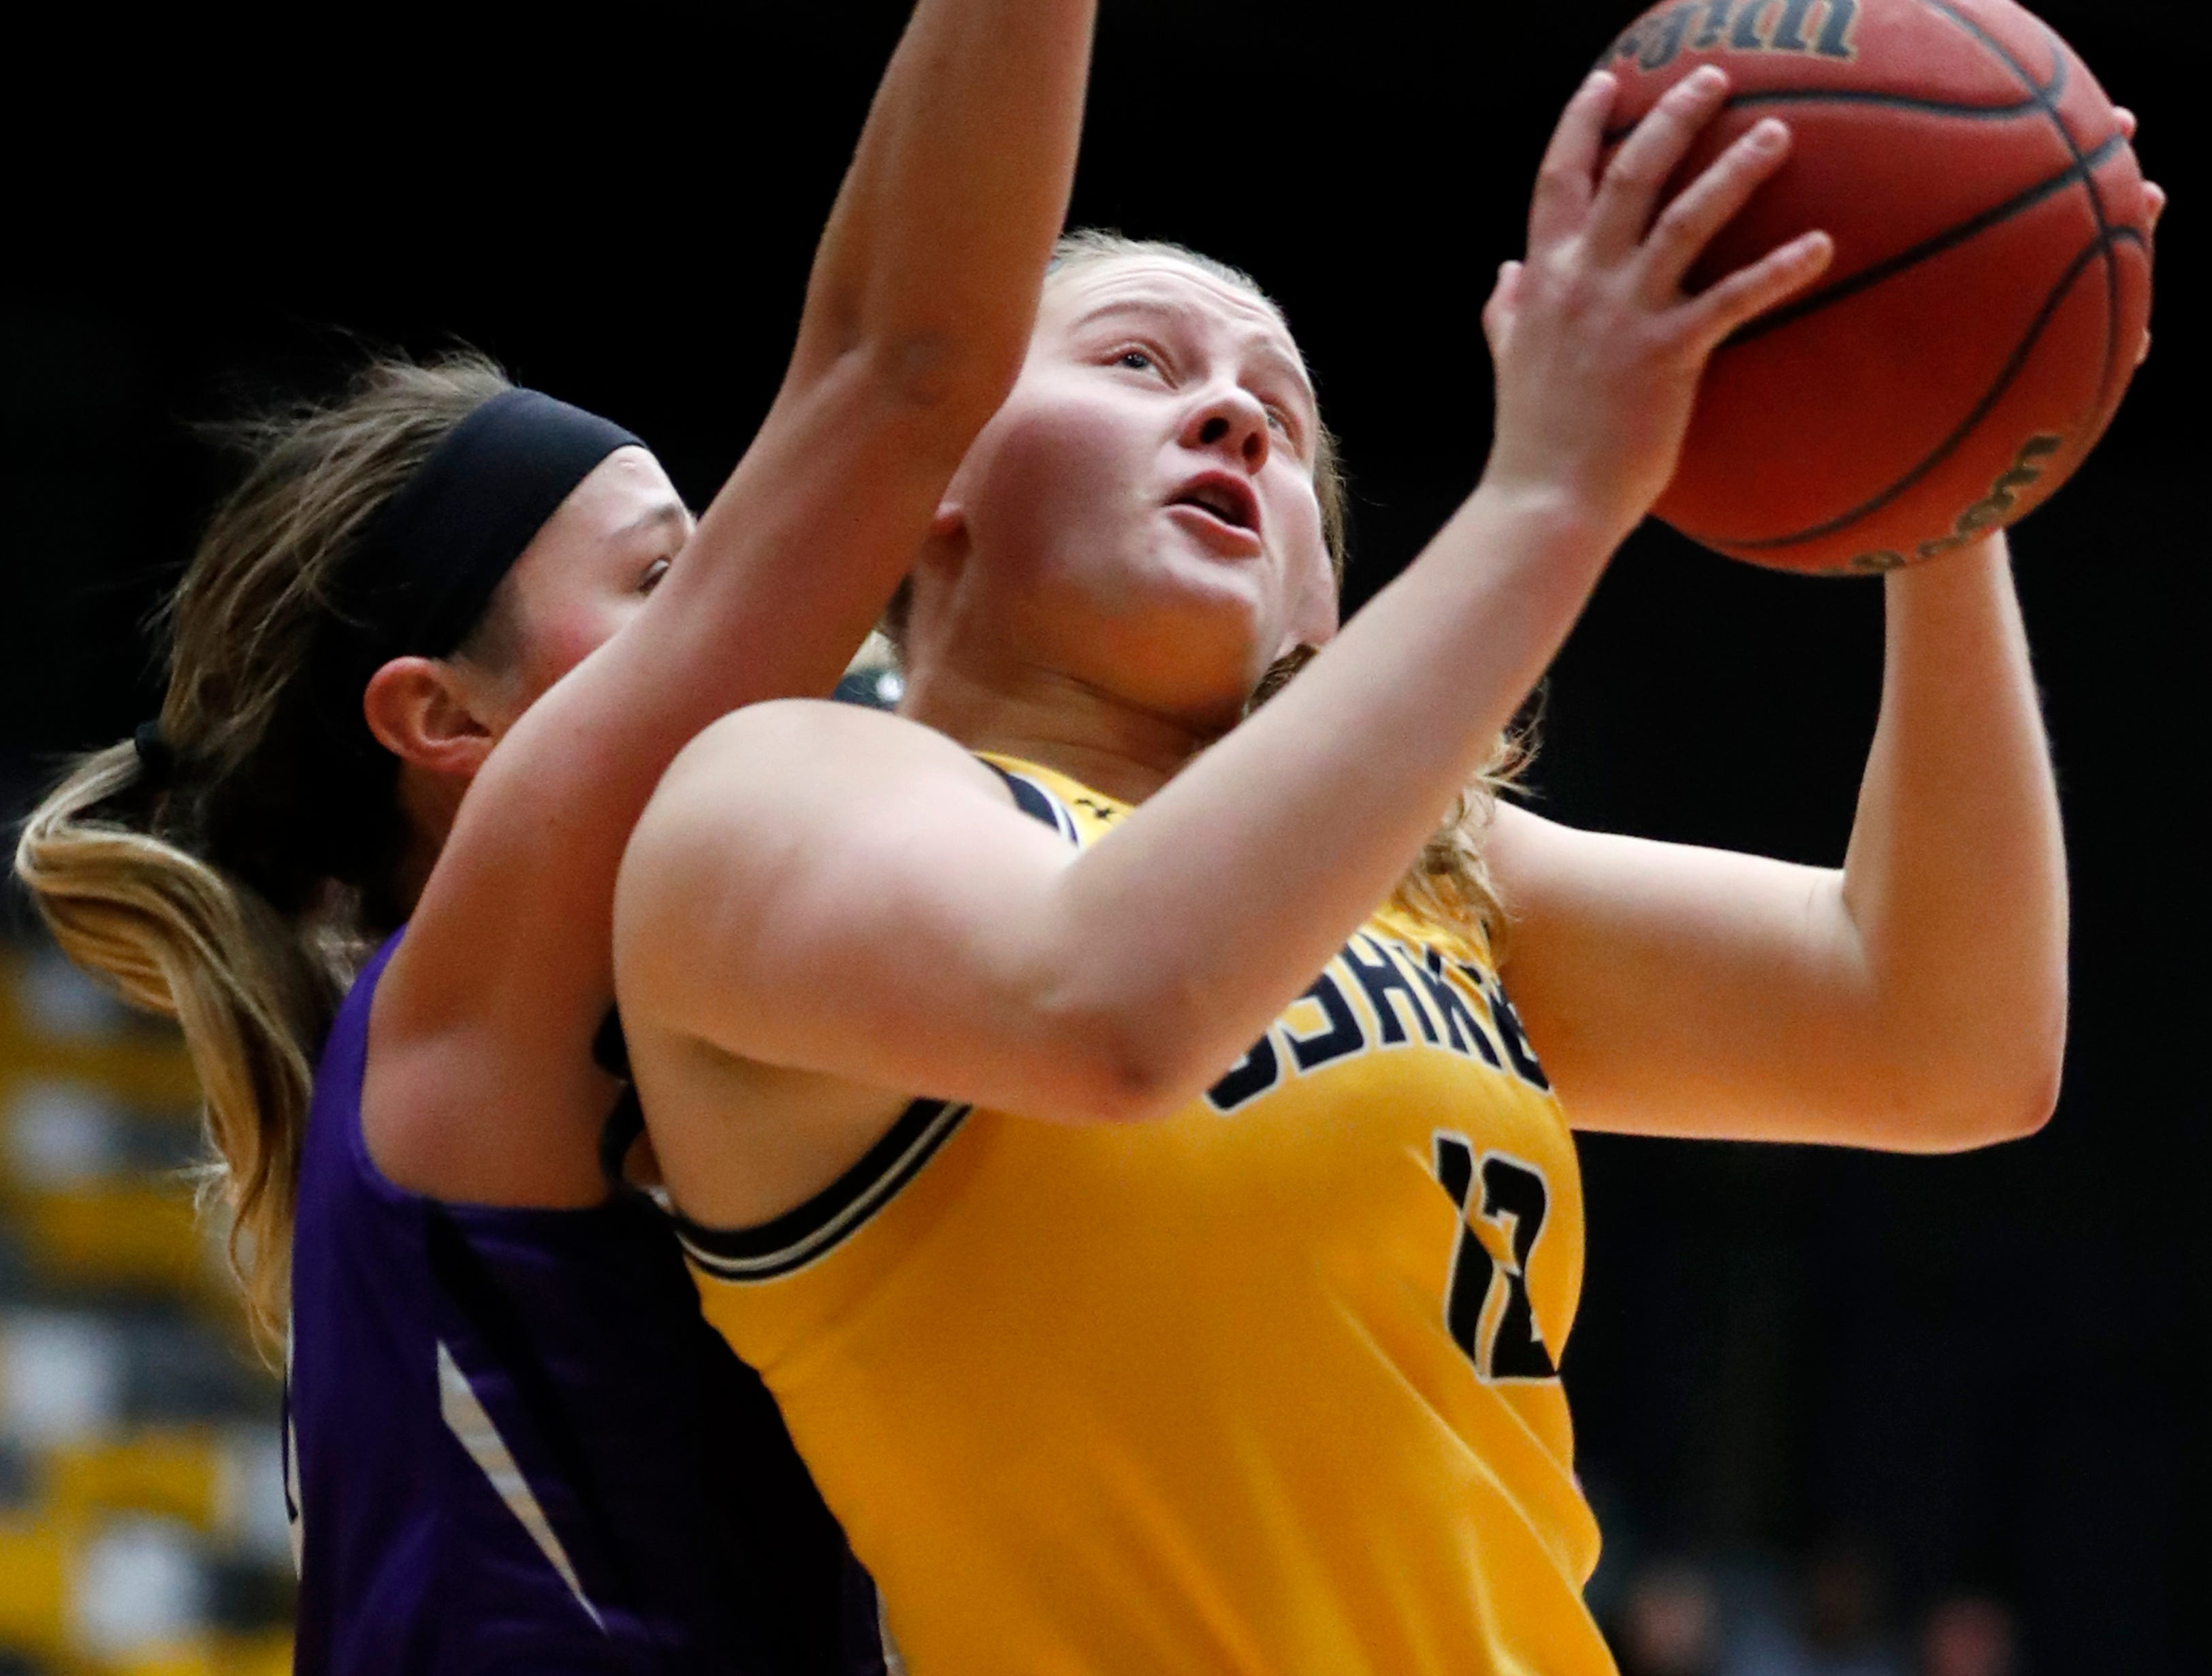 UW-OshkoshÕs Leah Porath (12) tries to push past UW-WhitewaterÕs Camri Conley (10) toward the basket during the WIAC Championship final Sunday, Feb. 24, 2019, at the Kolf Sports Center in Oshkosh, Wis.